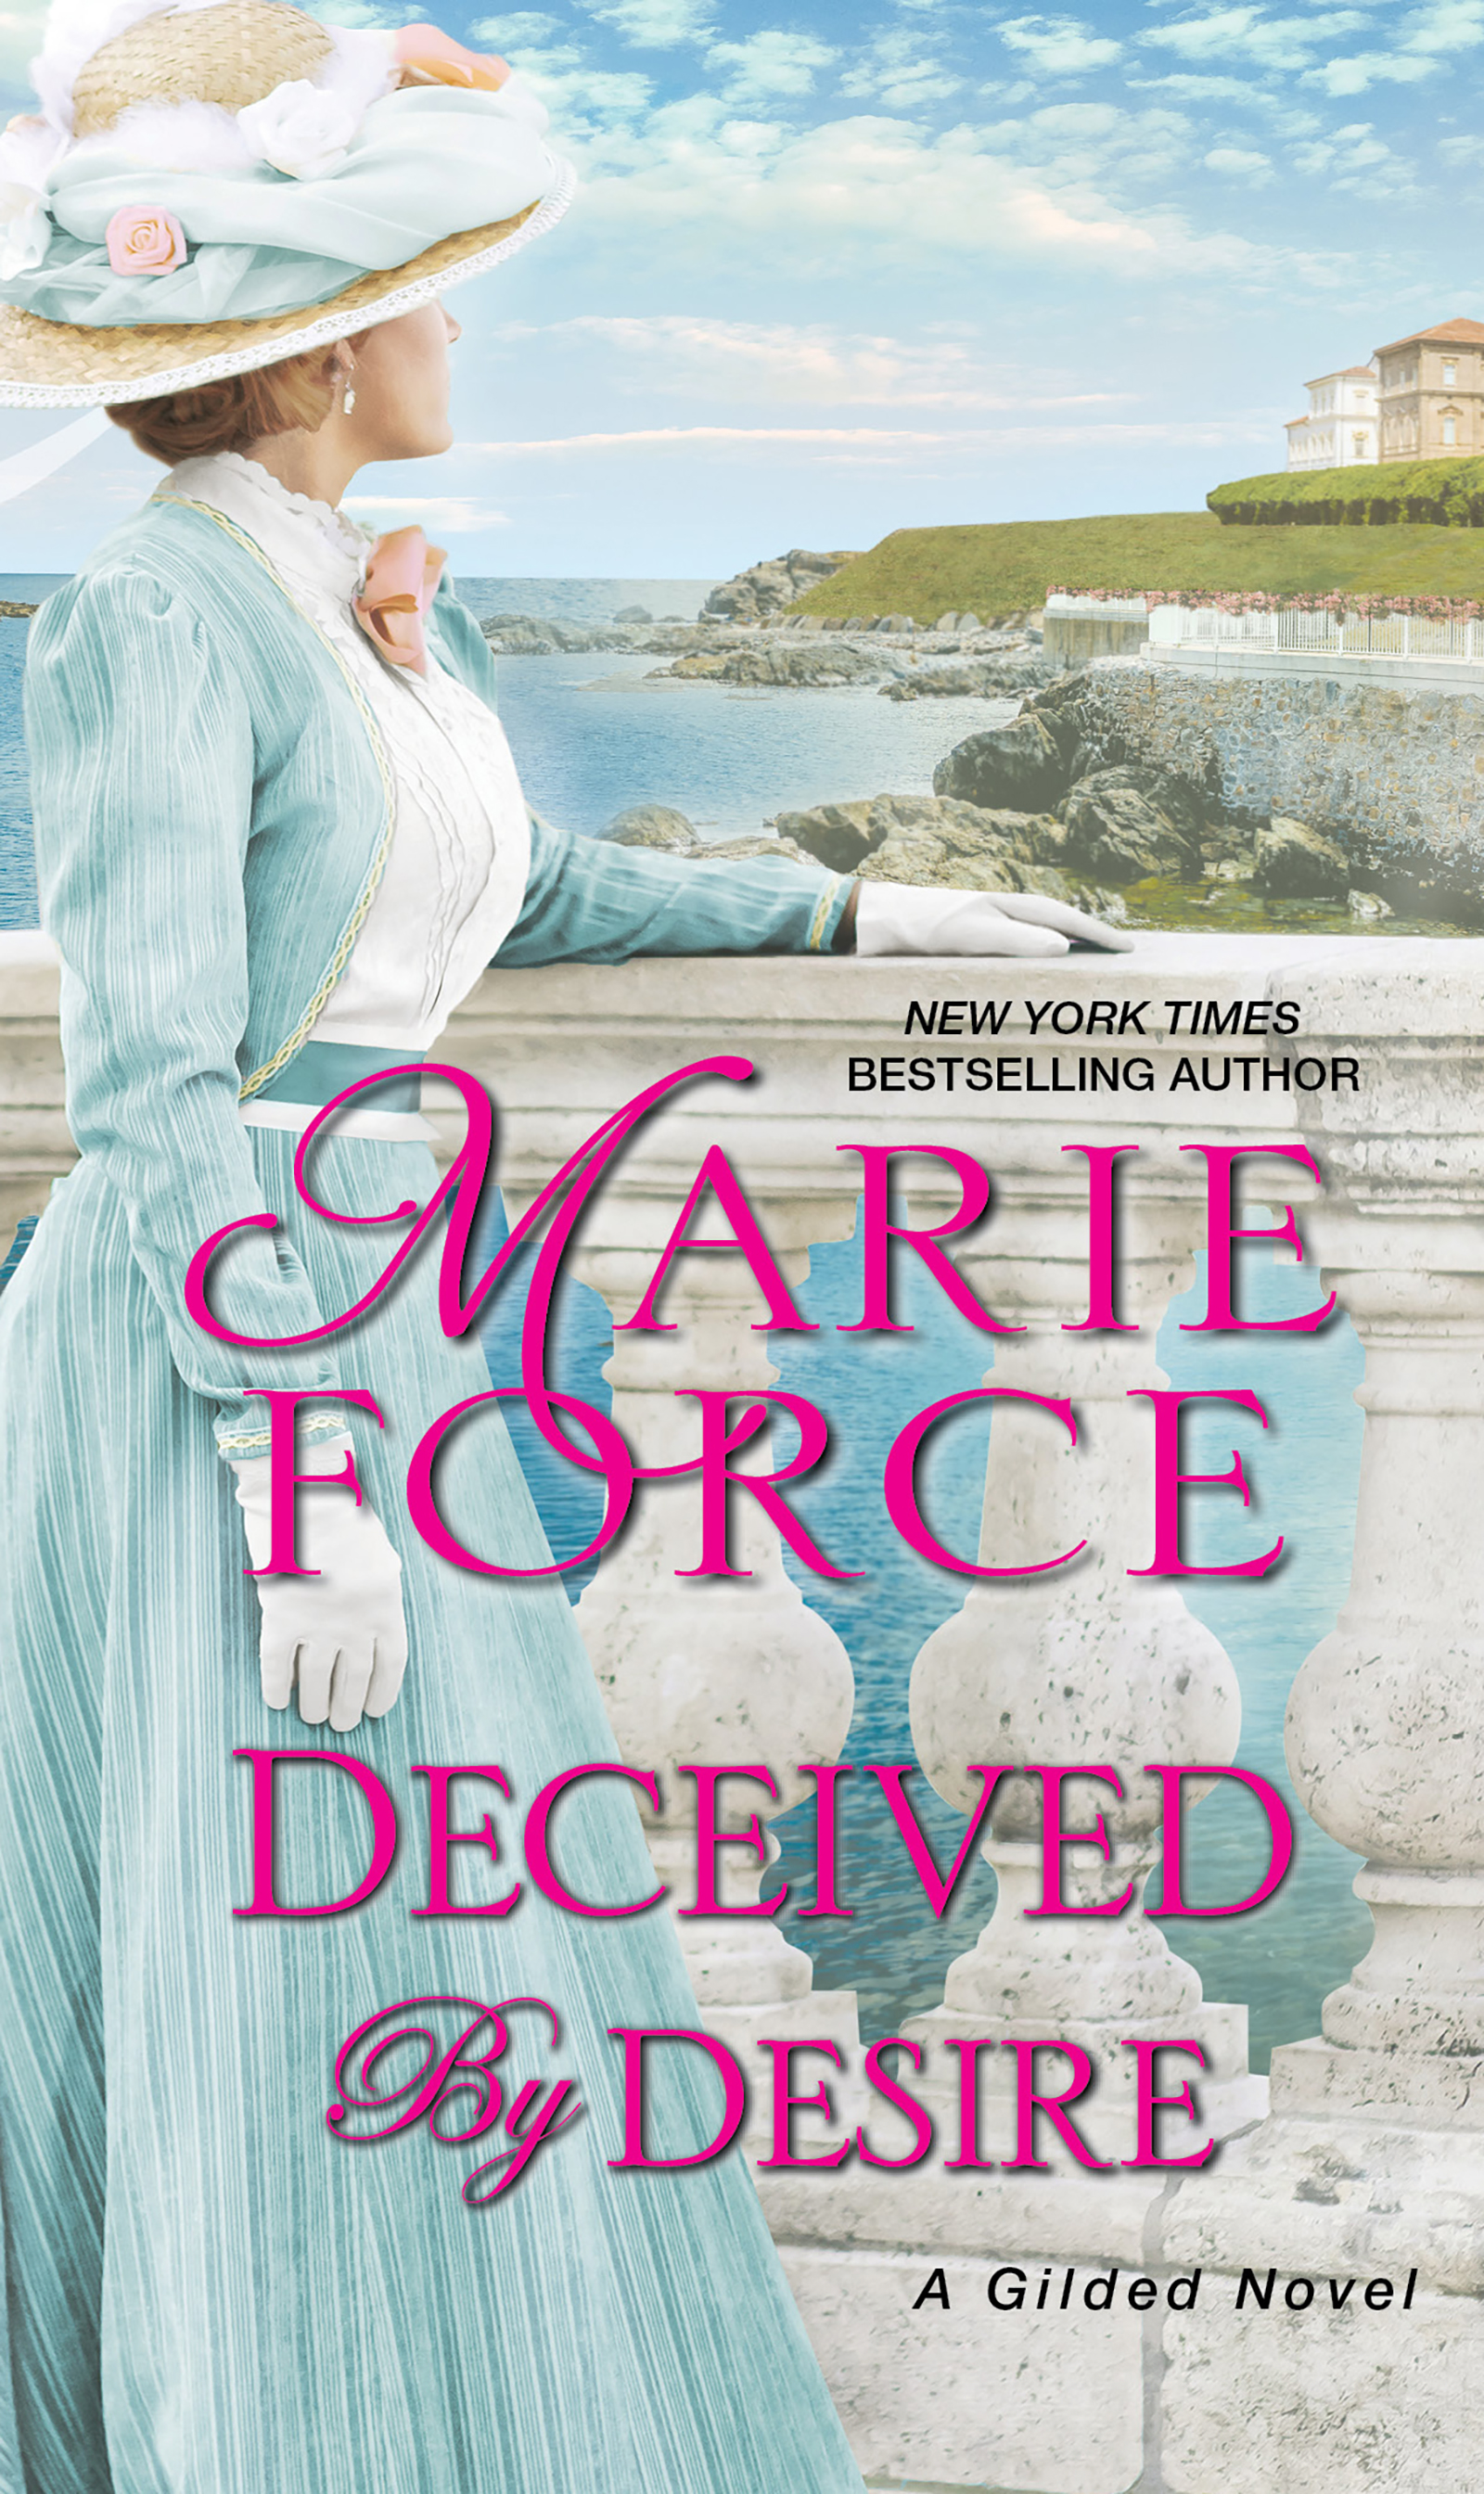 Cover Image of Deceived by Desire